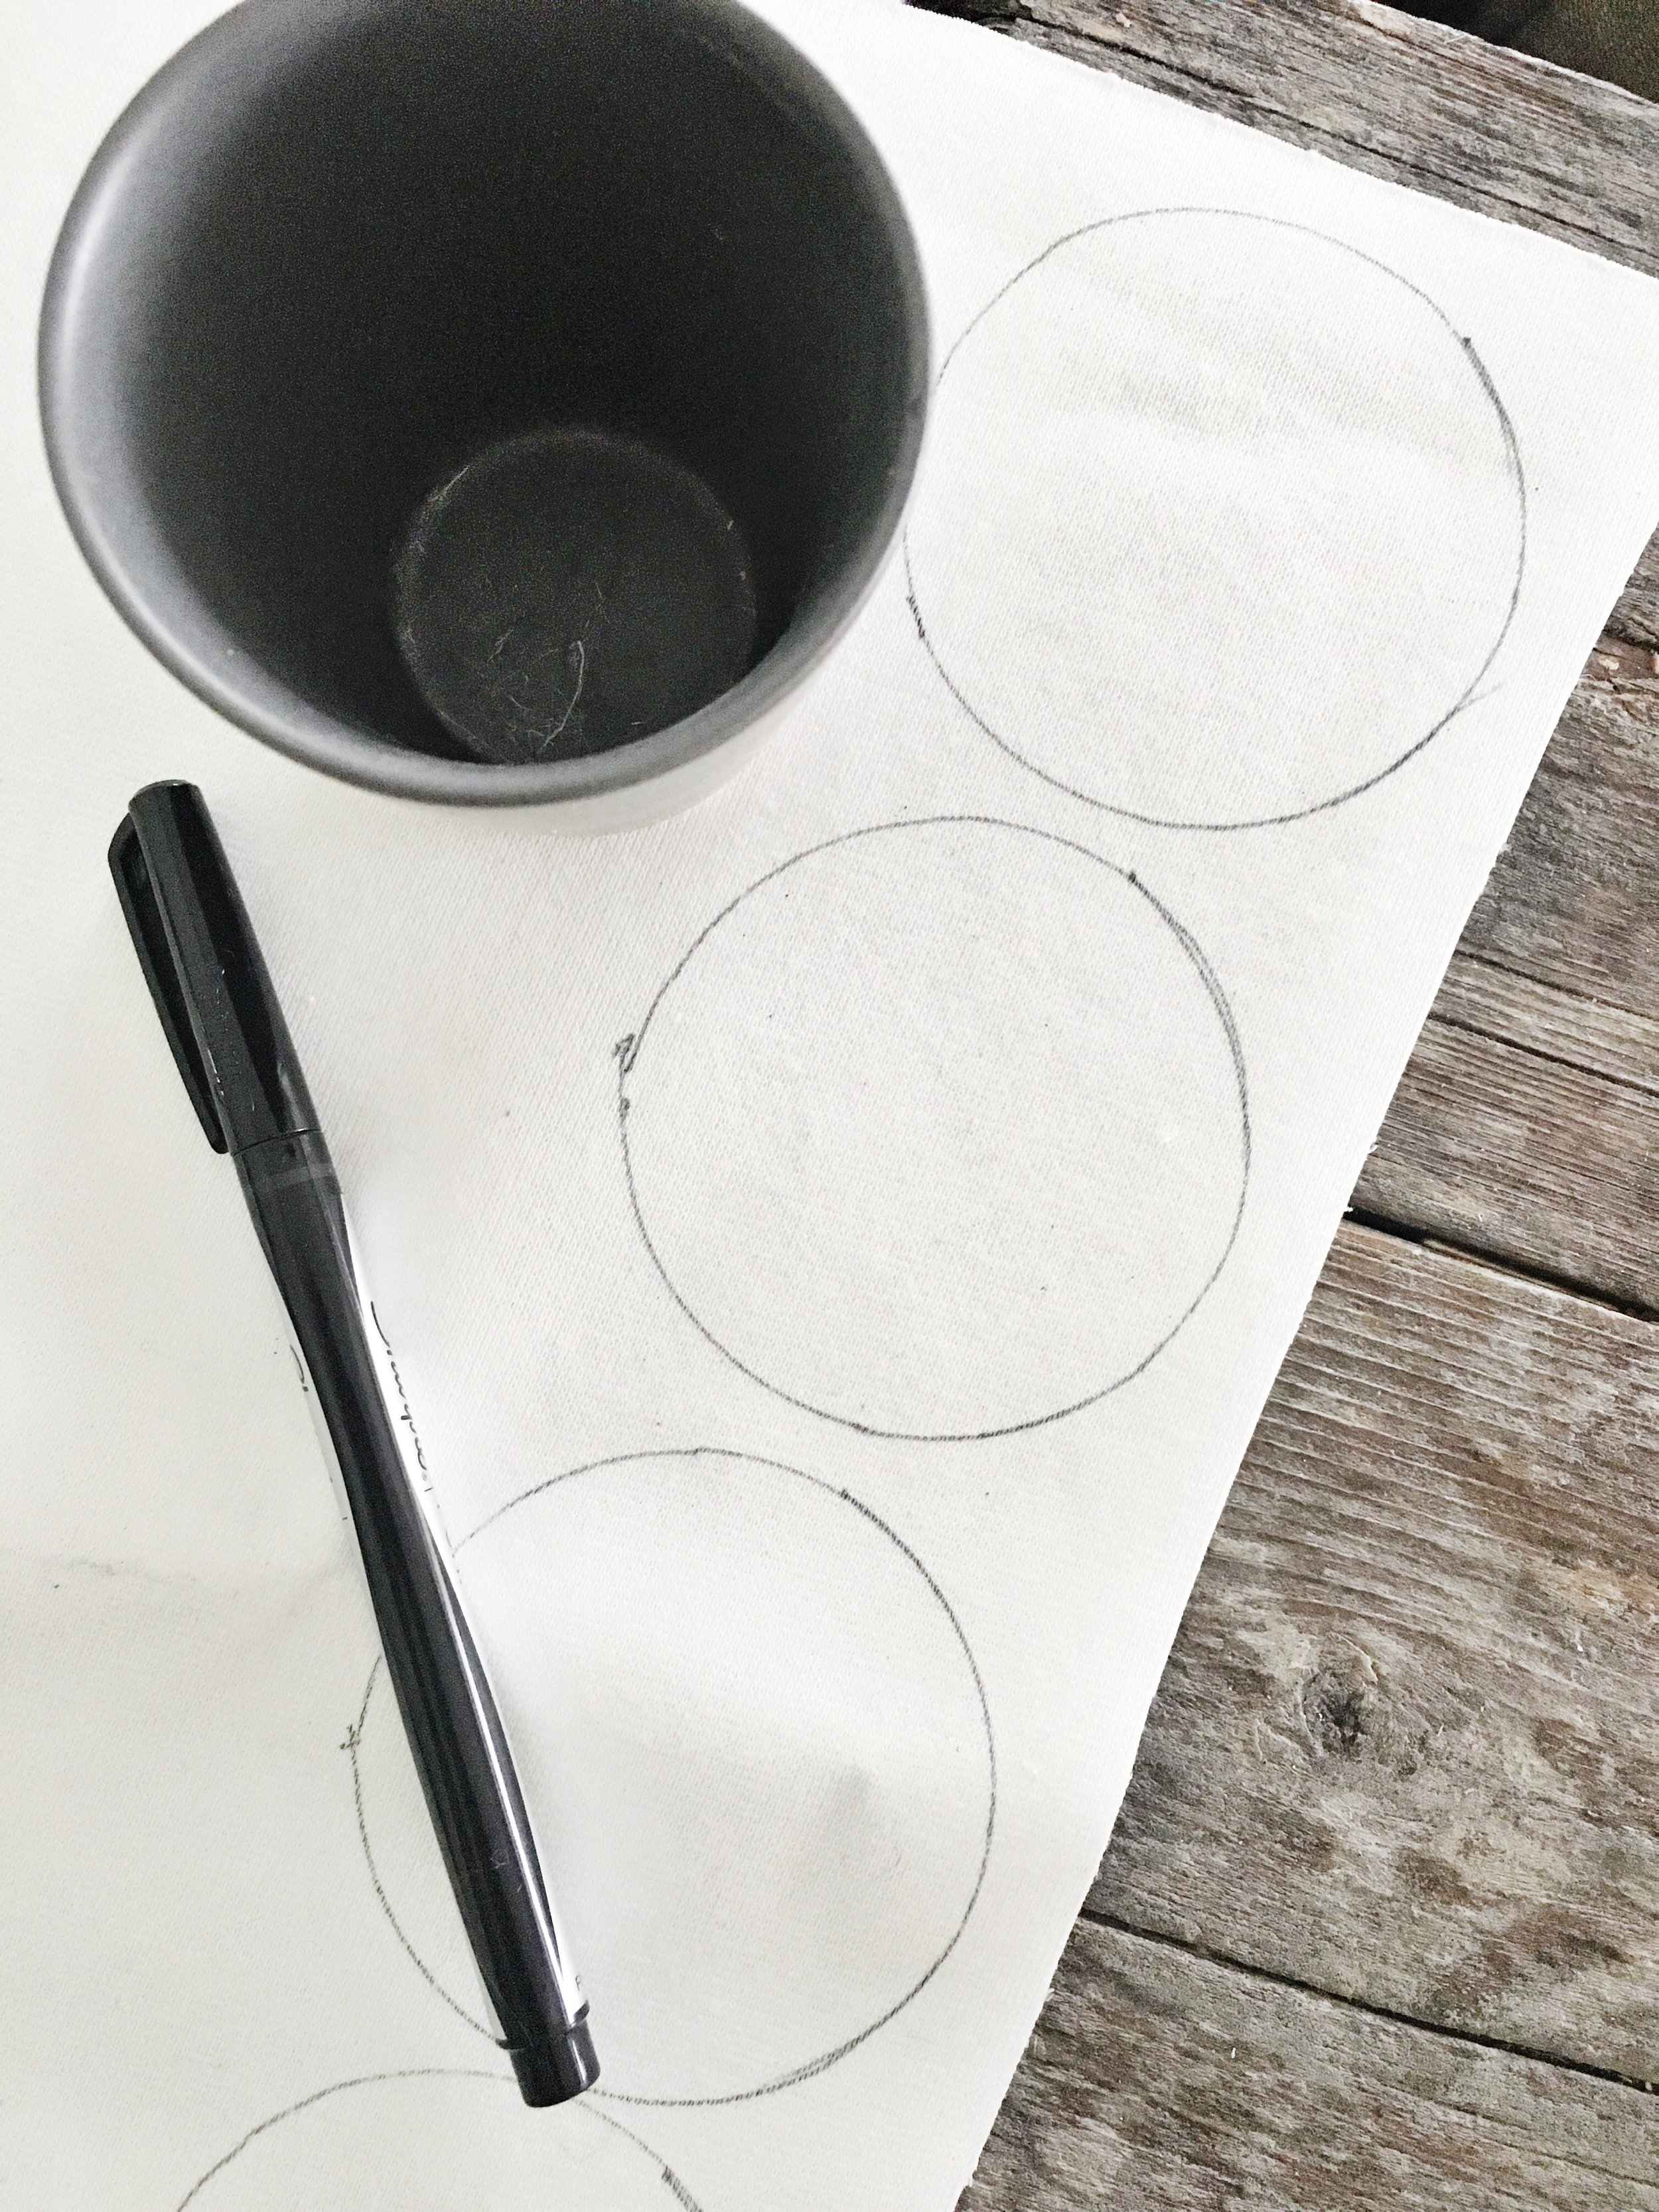 STEP ONE - Using your round object, trace out multiple circles on the back side of your pleather. I ended up needing 28 circles (approx. 2